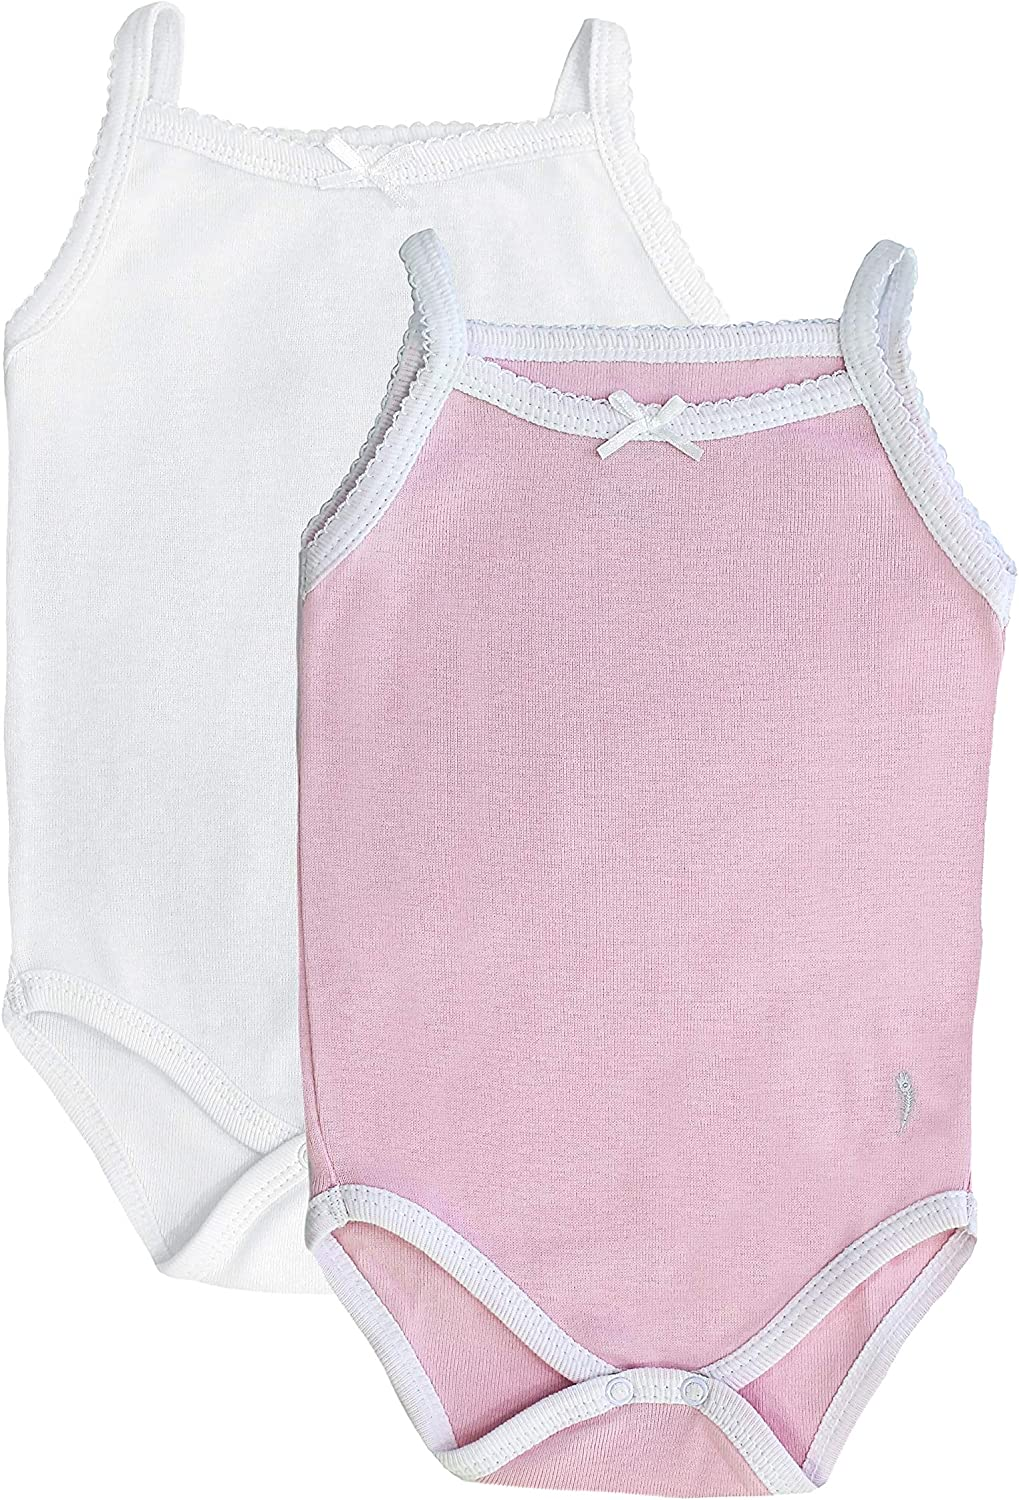 Feathers Baby Girls 100/% Cotton Super Soft Camisole Onesies 2-Pack